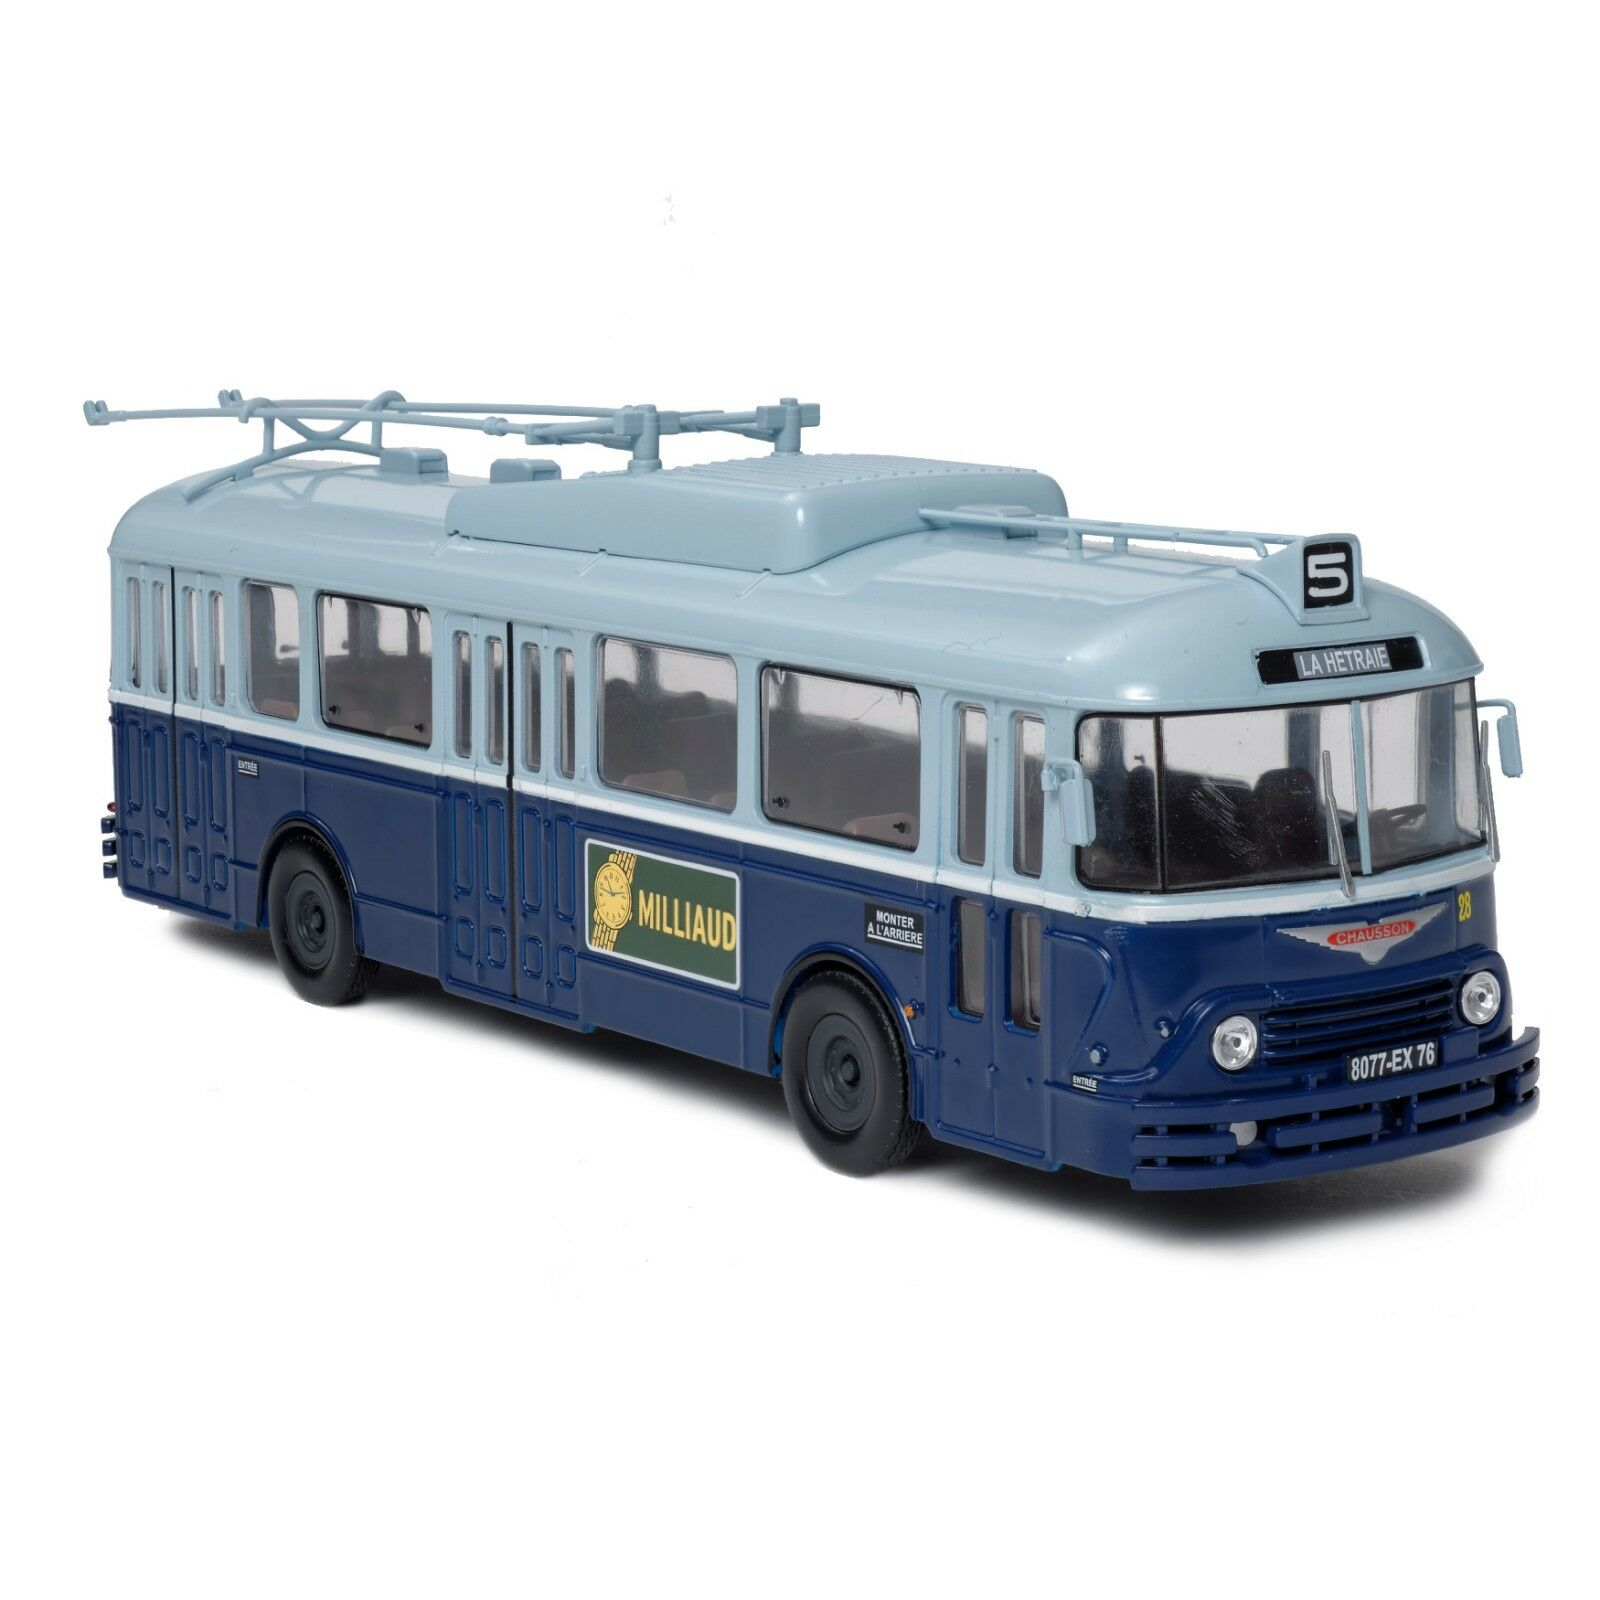 Trolleybus chausson-vétra apv 1 43 new in box miniature buses bus